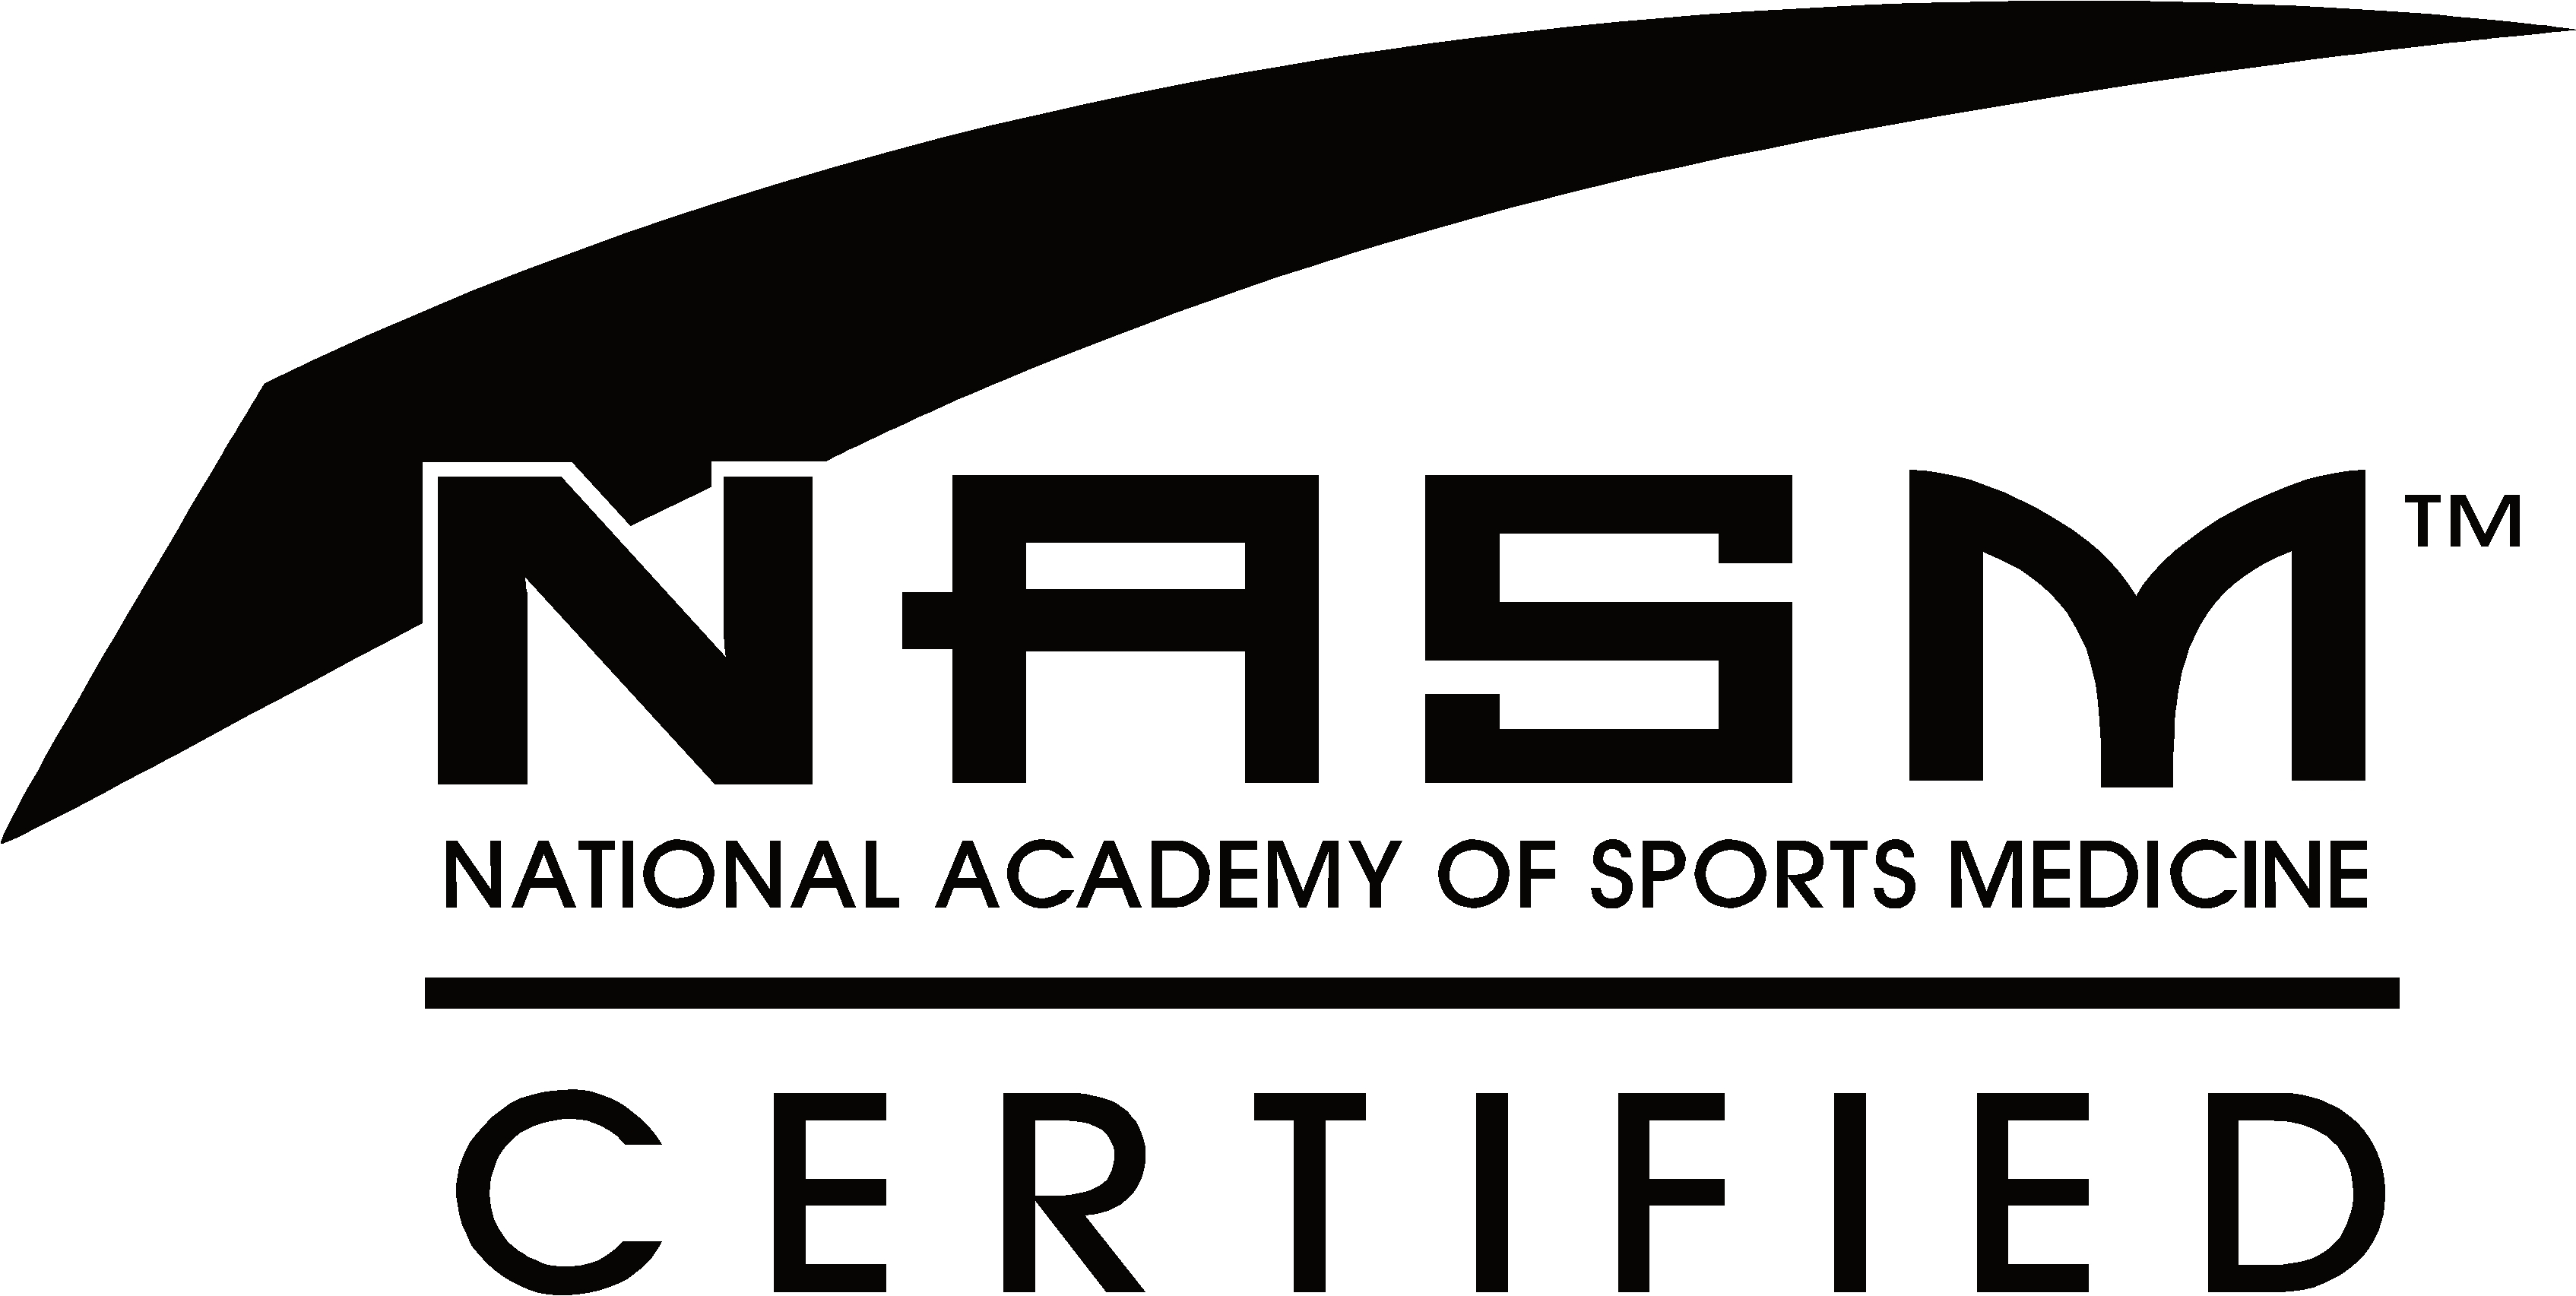 Elegant images of nasm personal training certification business gym wilmington from nasm personal training certification image source topsathletics xflitez Images